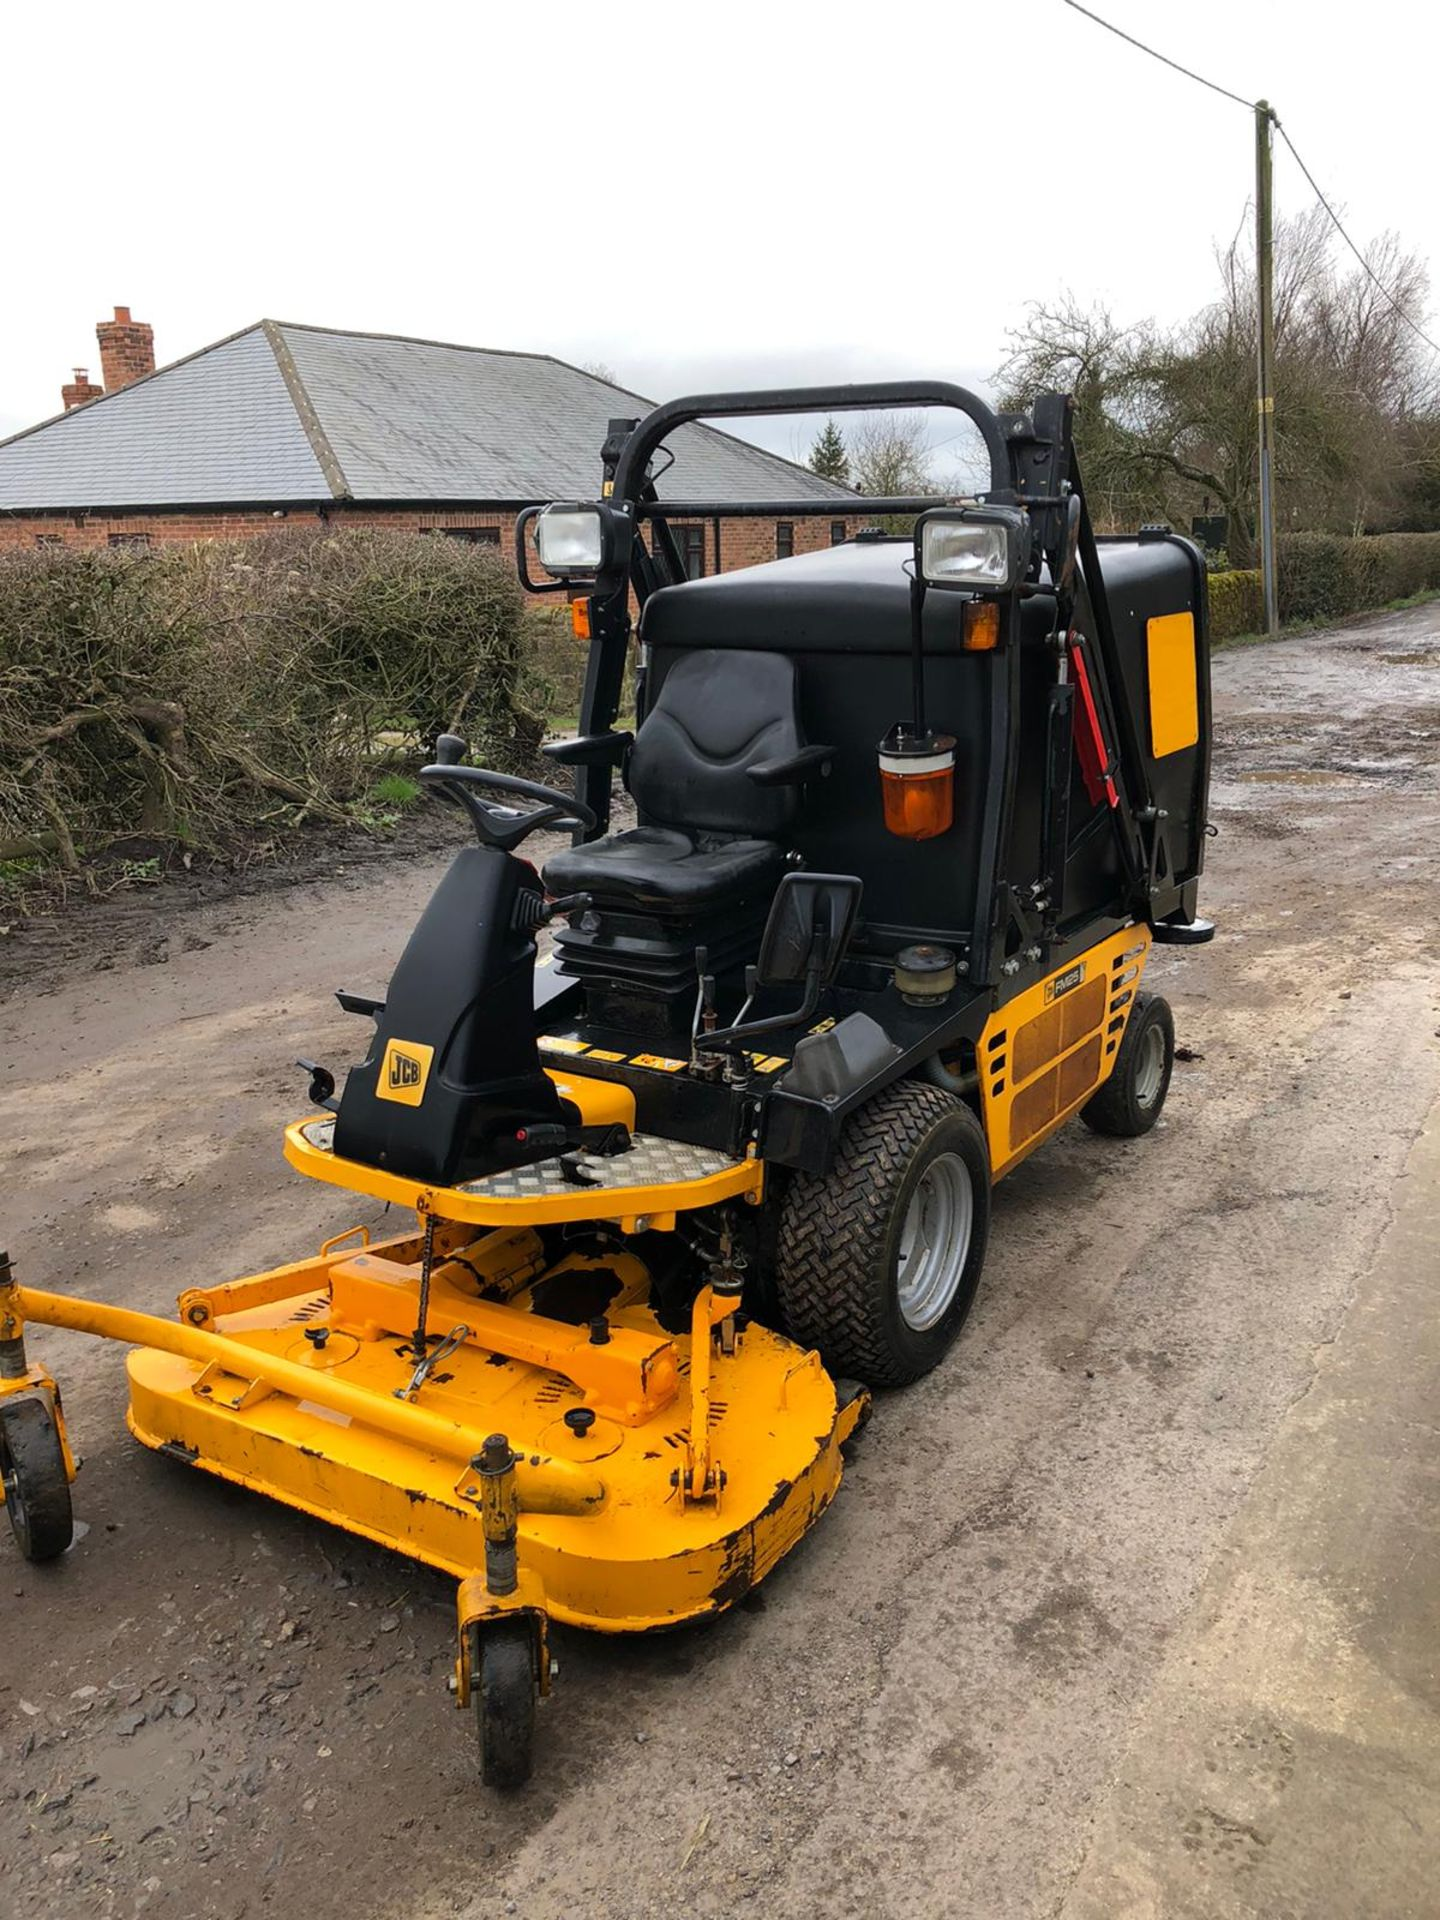 Lot 40 - JCB FM25 RIDE ON LAWN MOWER, RUNS, WORKS, CUTS, HIGHTIP COLLECTOR, IN GOOD CONDITION, ONLY 300 HOURS